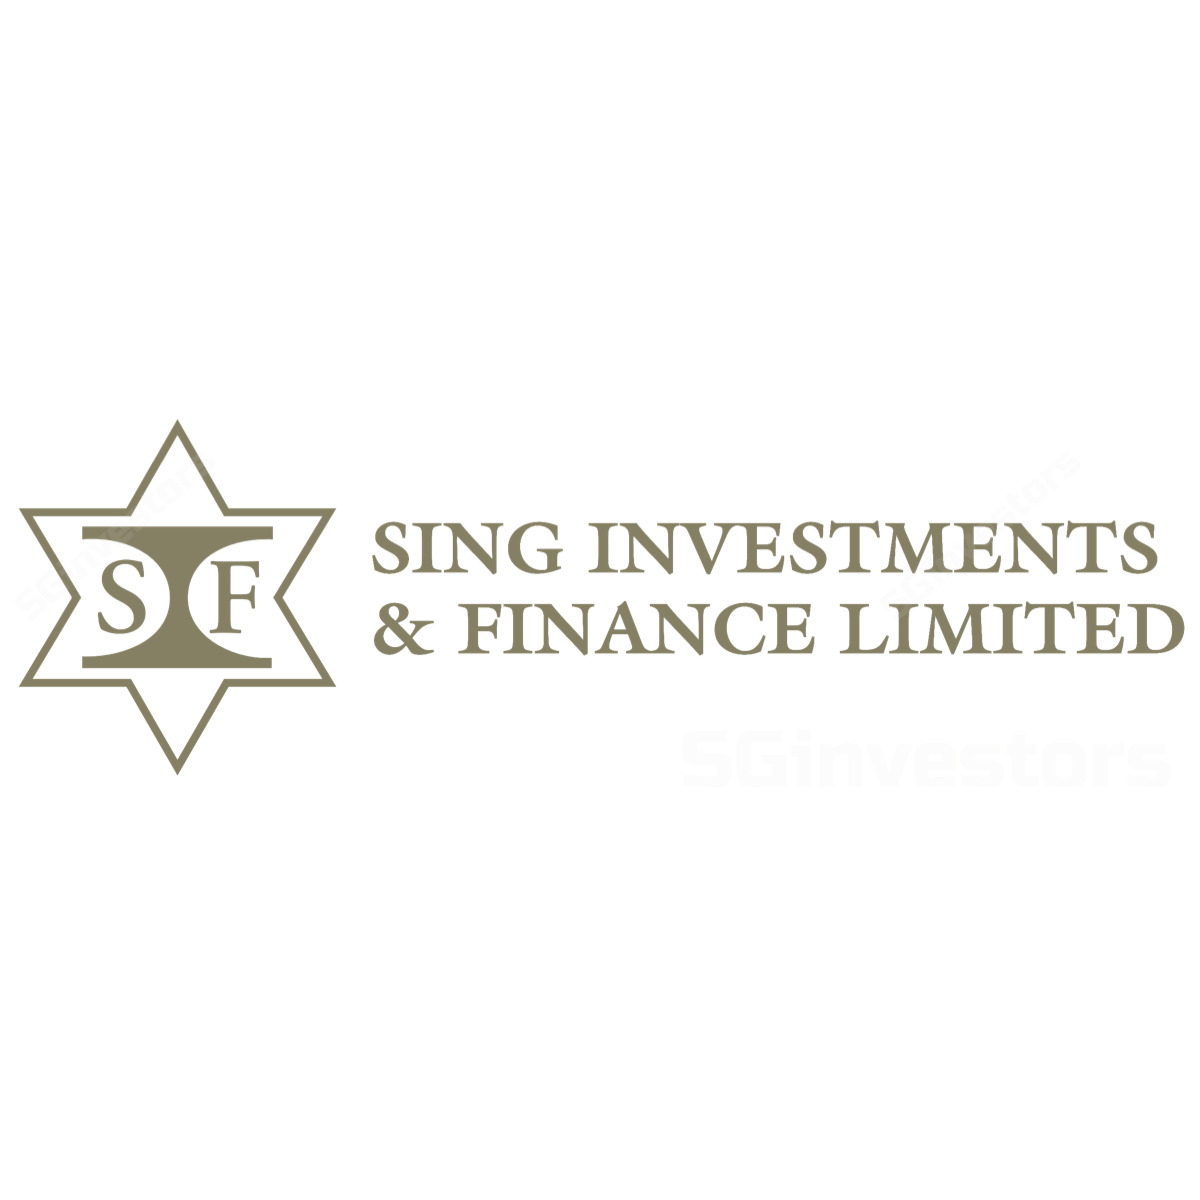 Sing Investments & Finance Limited - Phillip Securities 2017-07-24: Massive 40% PATMI Growth In FY17e